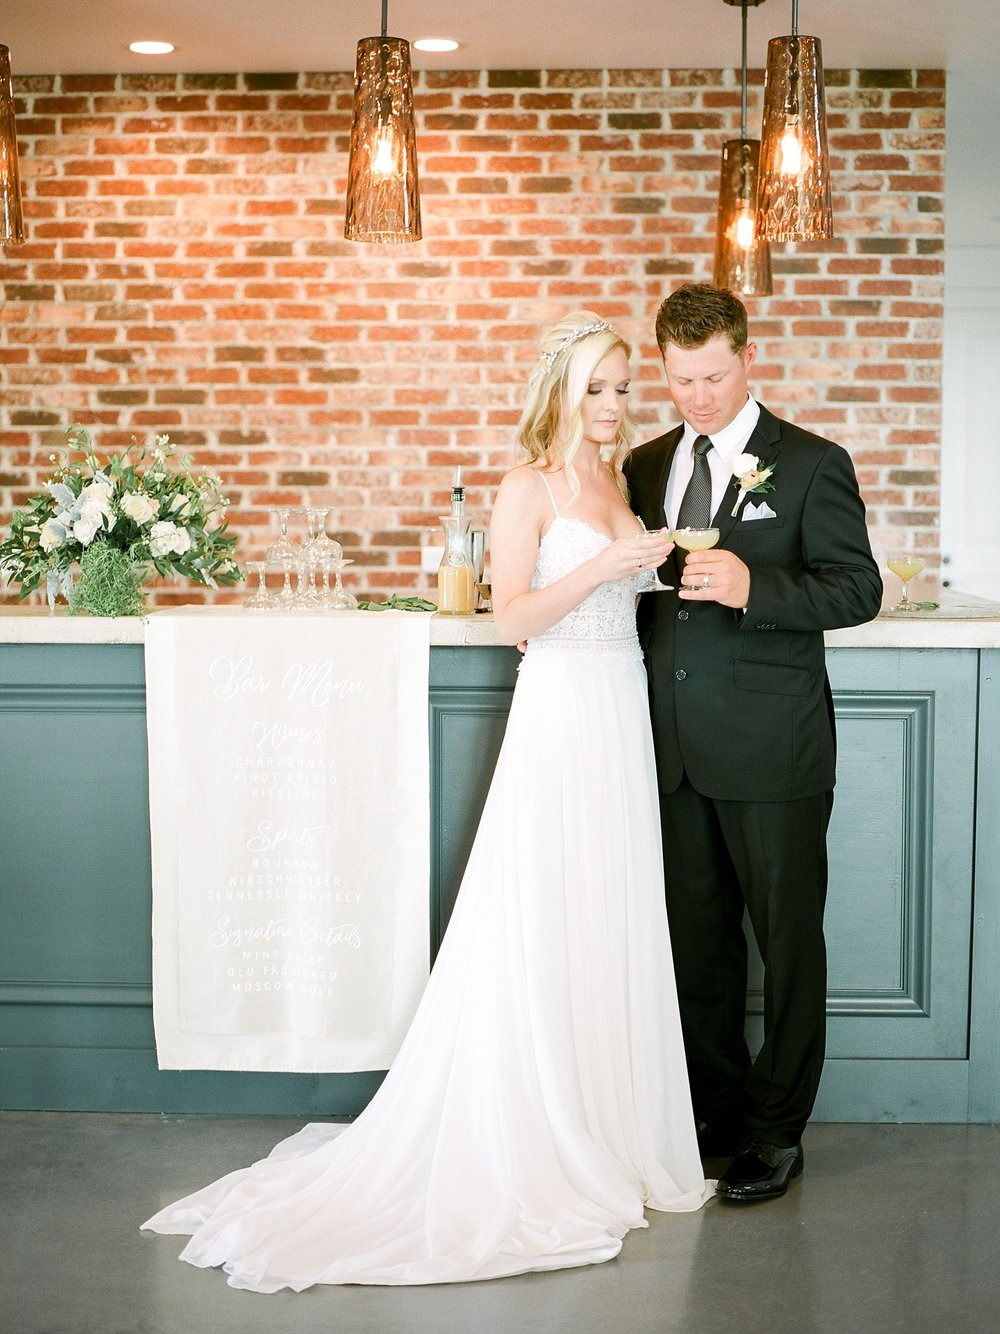 Textural Organic Wedding in All White Venue by Kelsi Kliethermes Wedding Photographer - Missouri, Midwest, and Destinations_0114.jpg